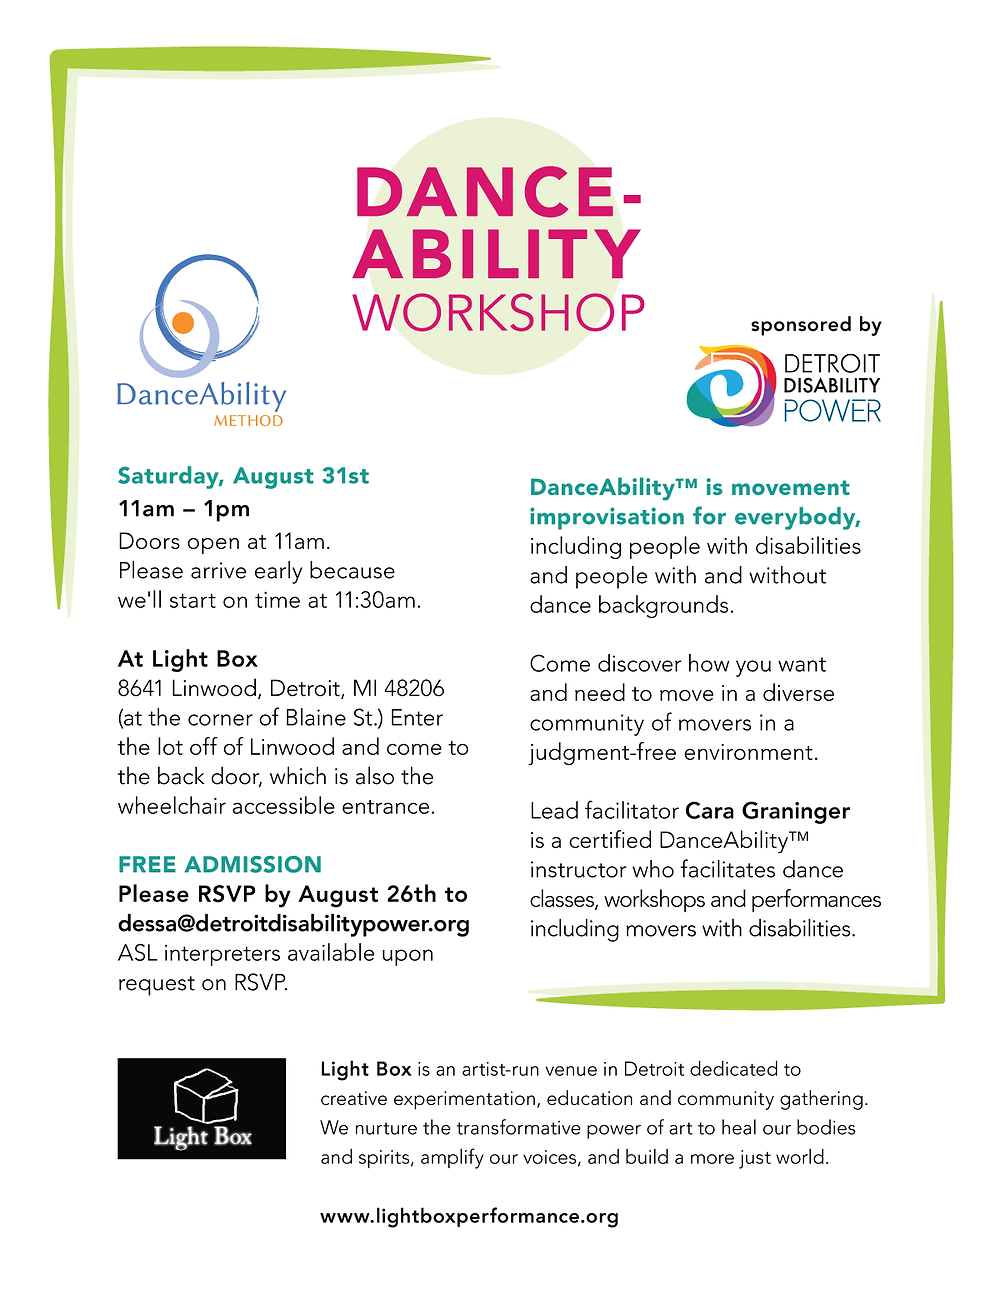 DANCE-ABILITY WORKSHOP flyer